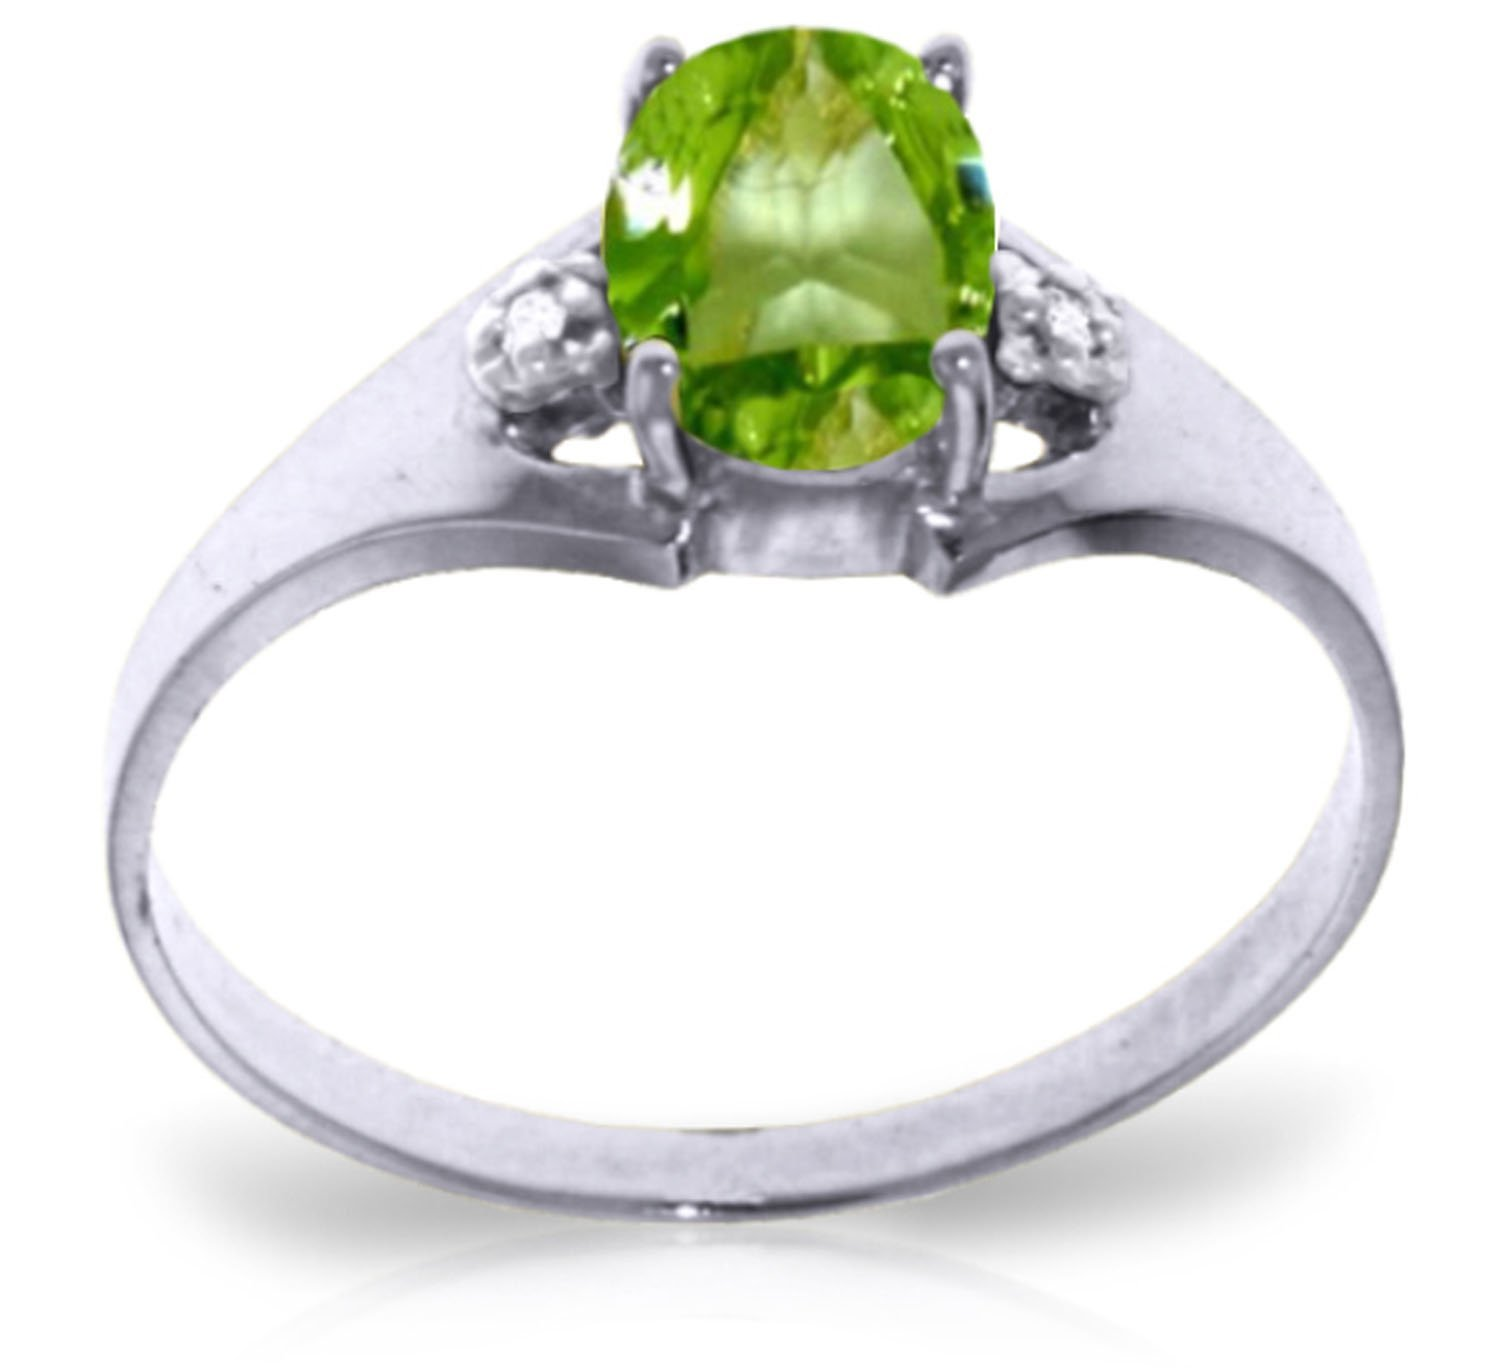 0.76 Carat 14k Solid White Gold Ring with Genuine Diamonds and Natural Oval-shaped Peridot - Size 9